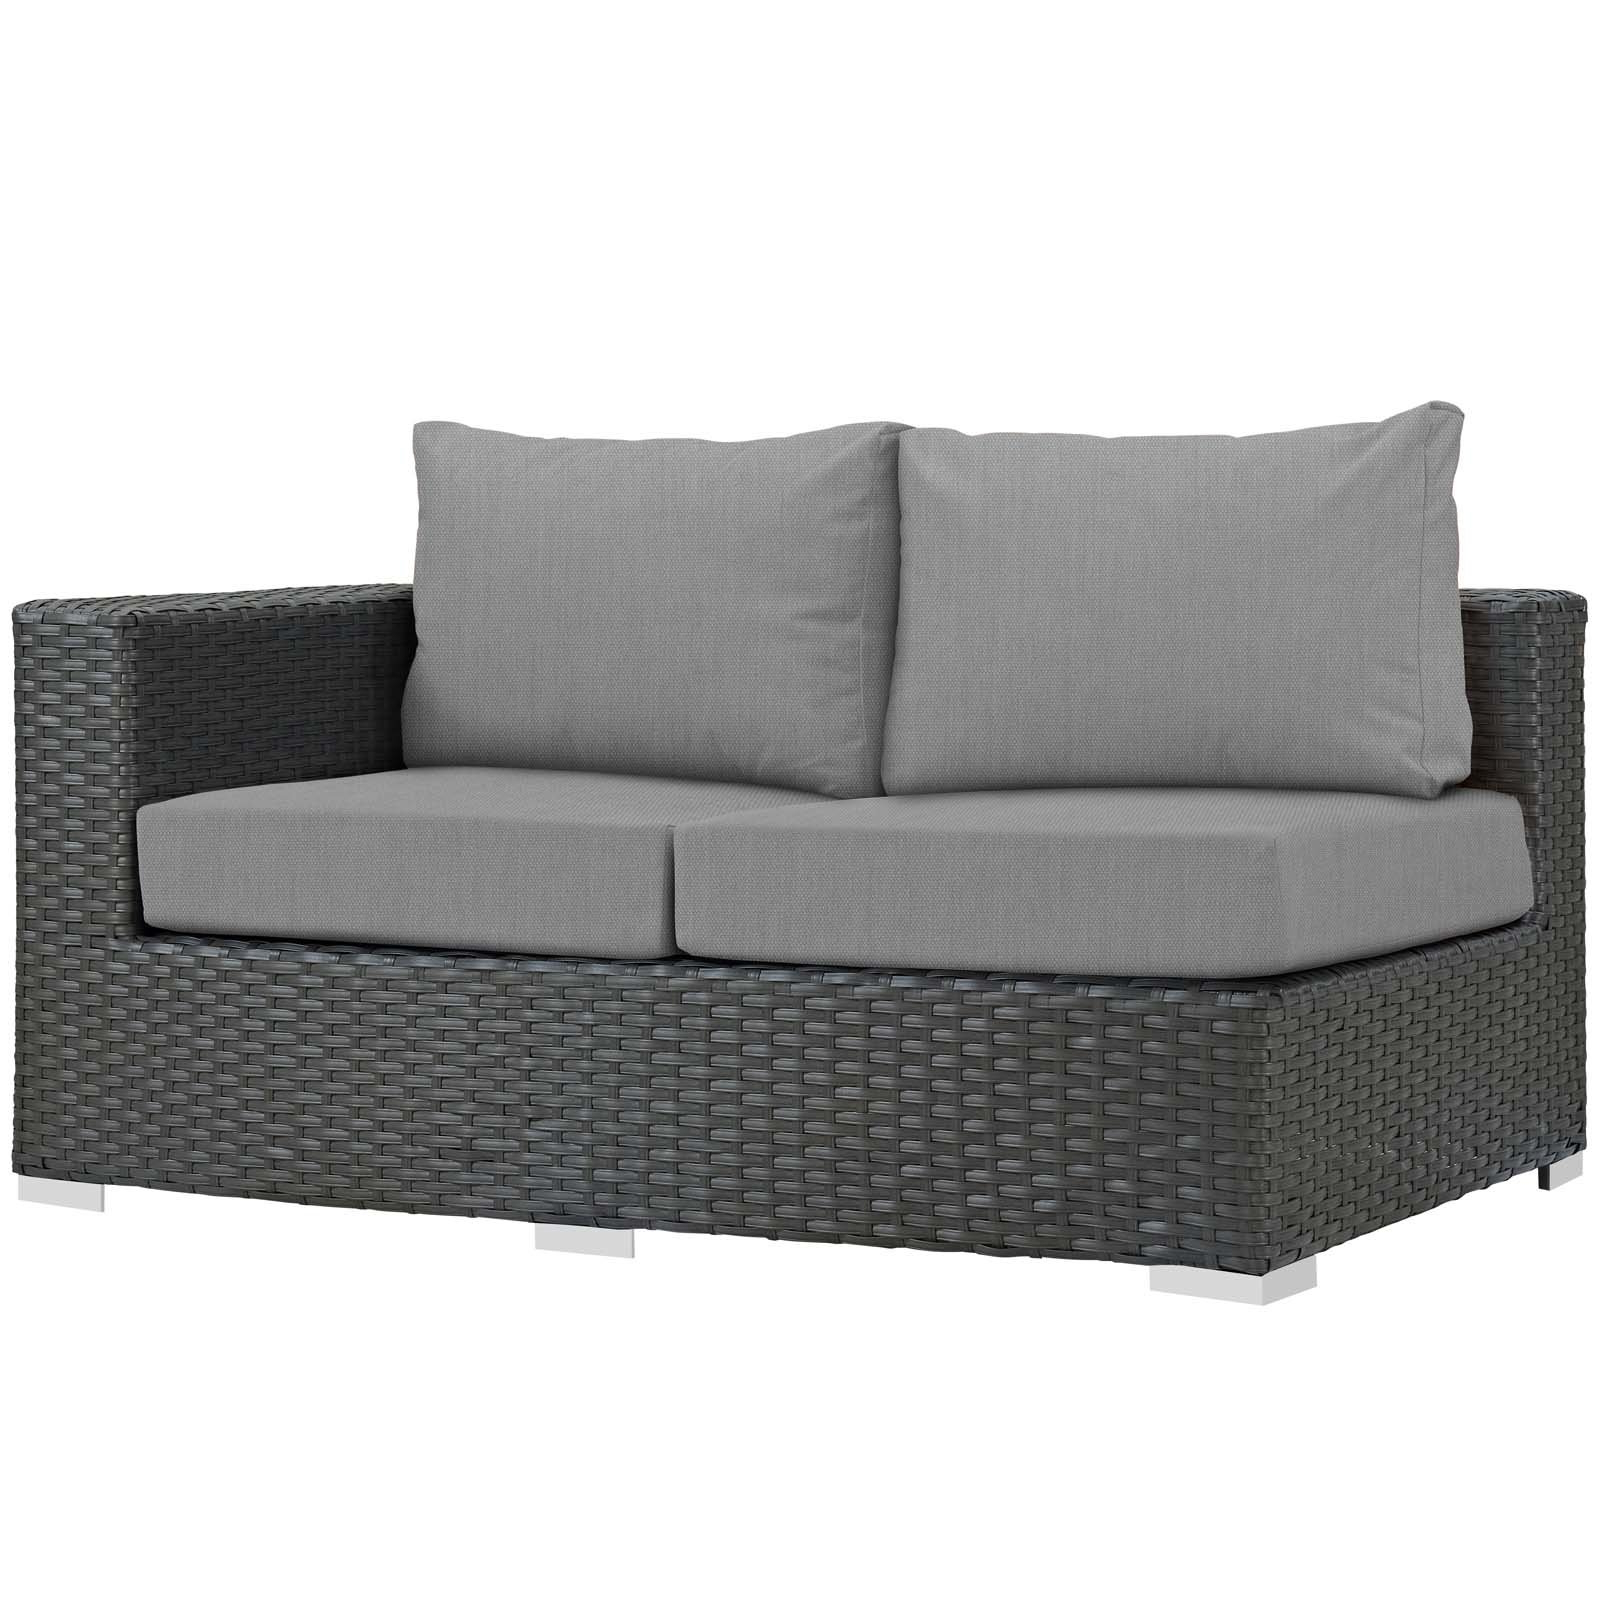 Current Tripp Right Arm Loveseat Sectional Piece With Cushions Throughout Mullenax Outdoor Loveseats With Cushions (View 1 of 20)